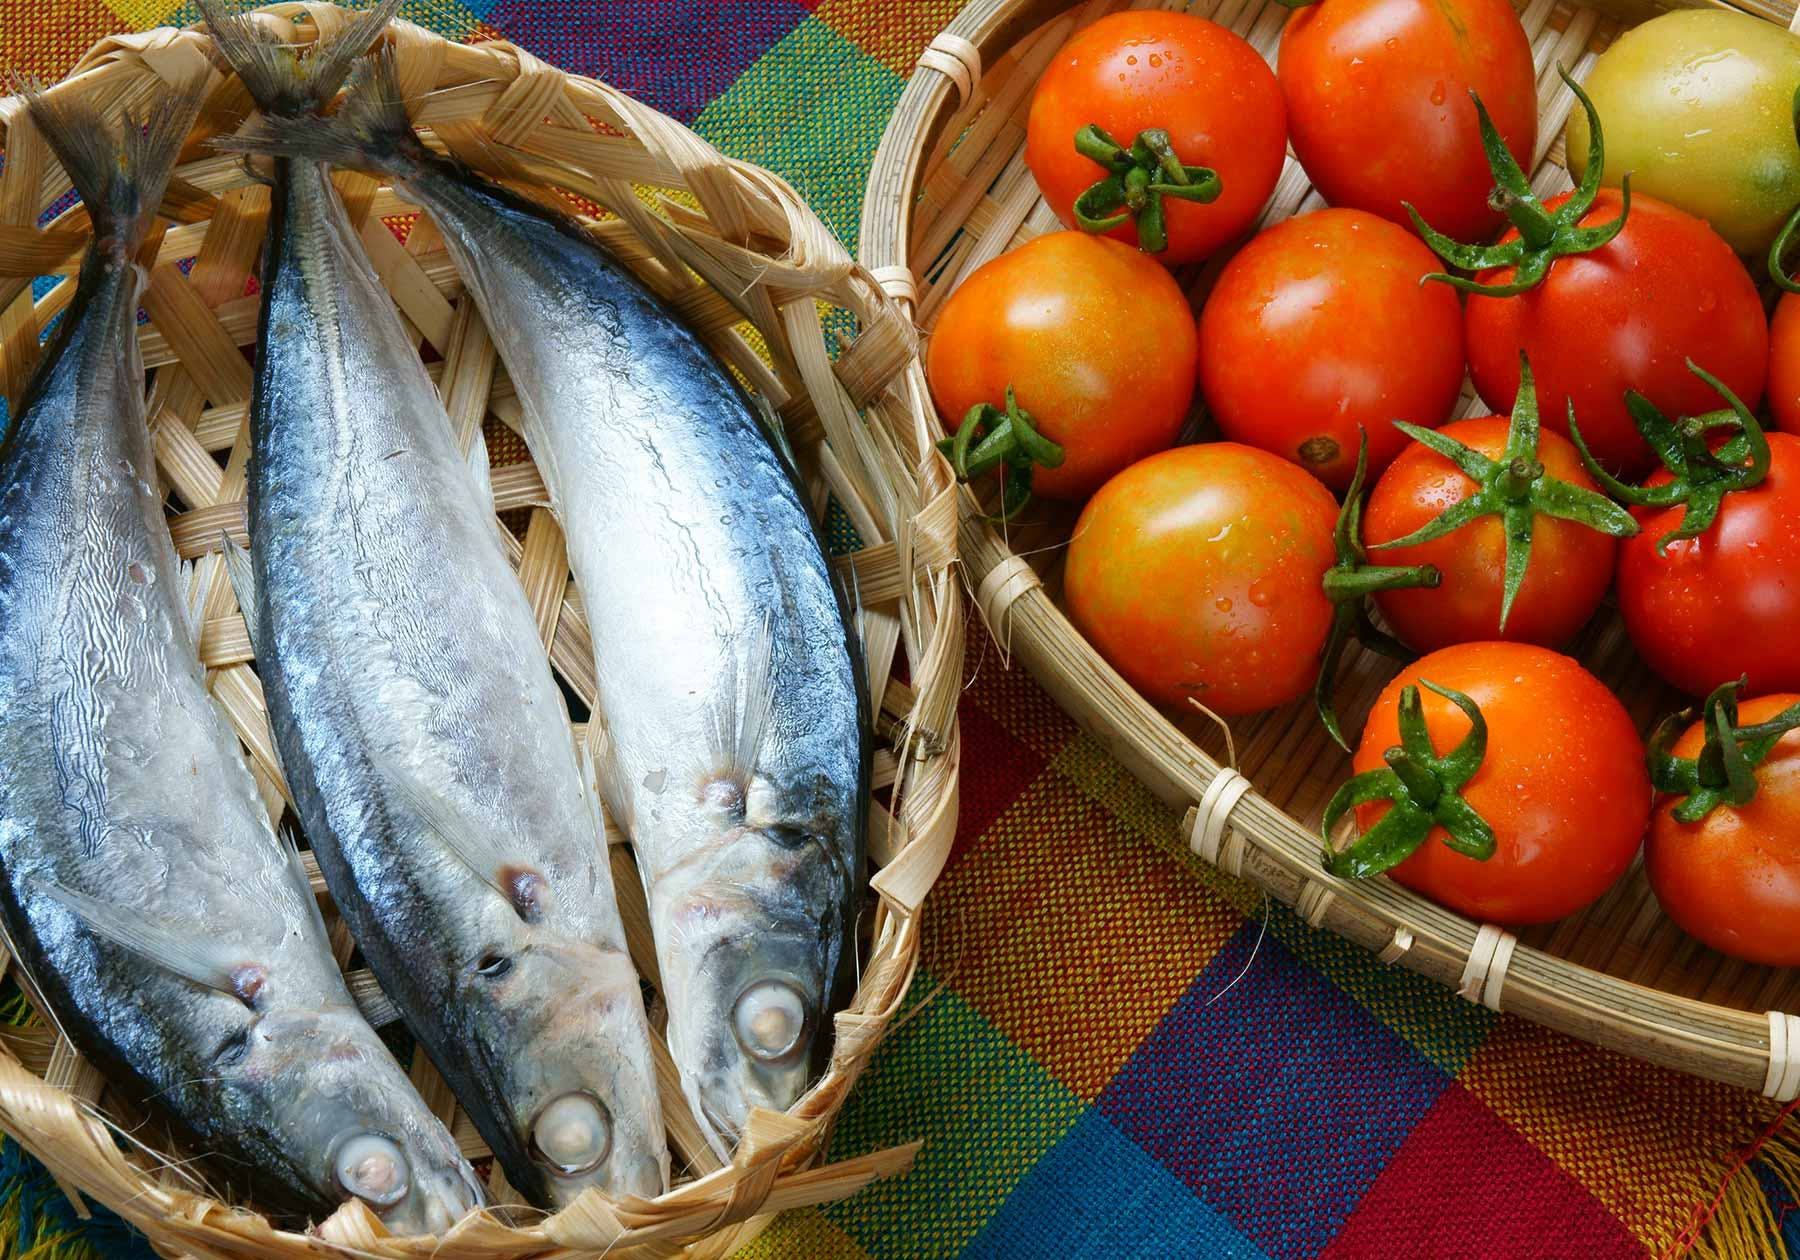 Baskets of fresh fish and tomatoes to represent French cuisine in French Polynesia and Vietnam.